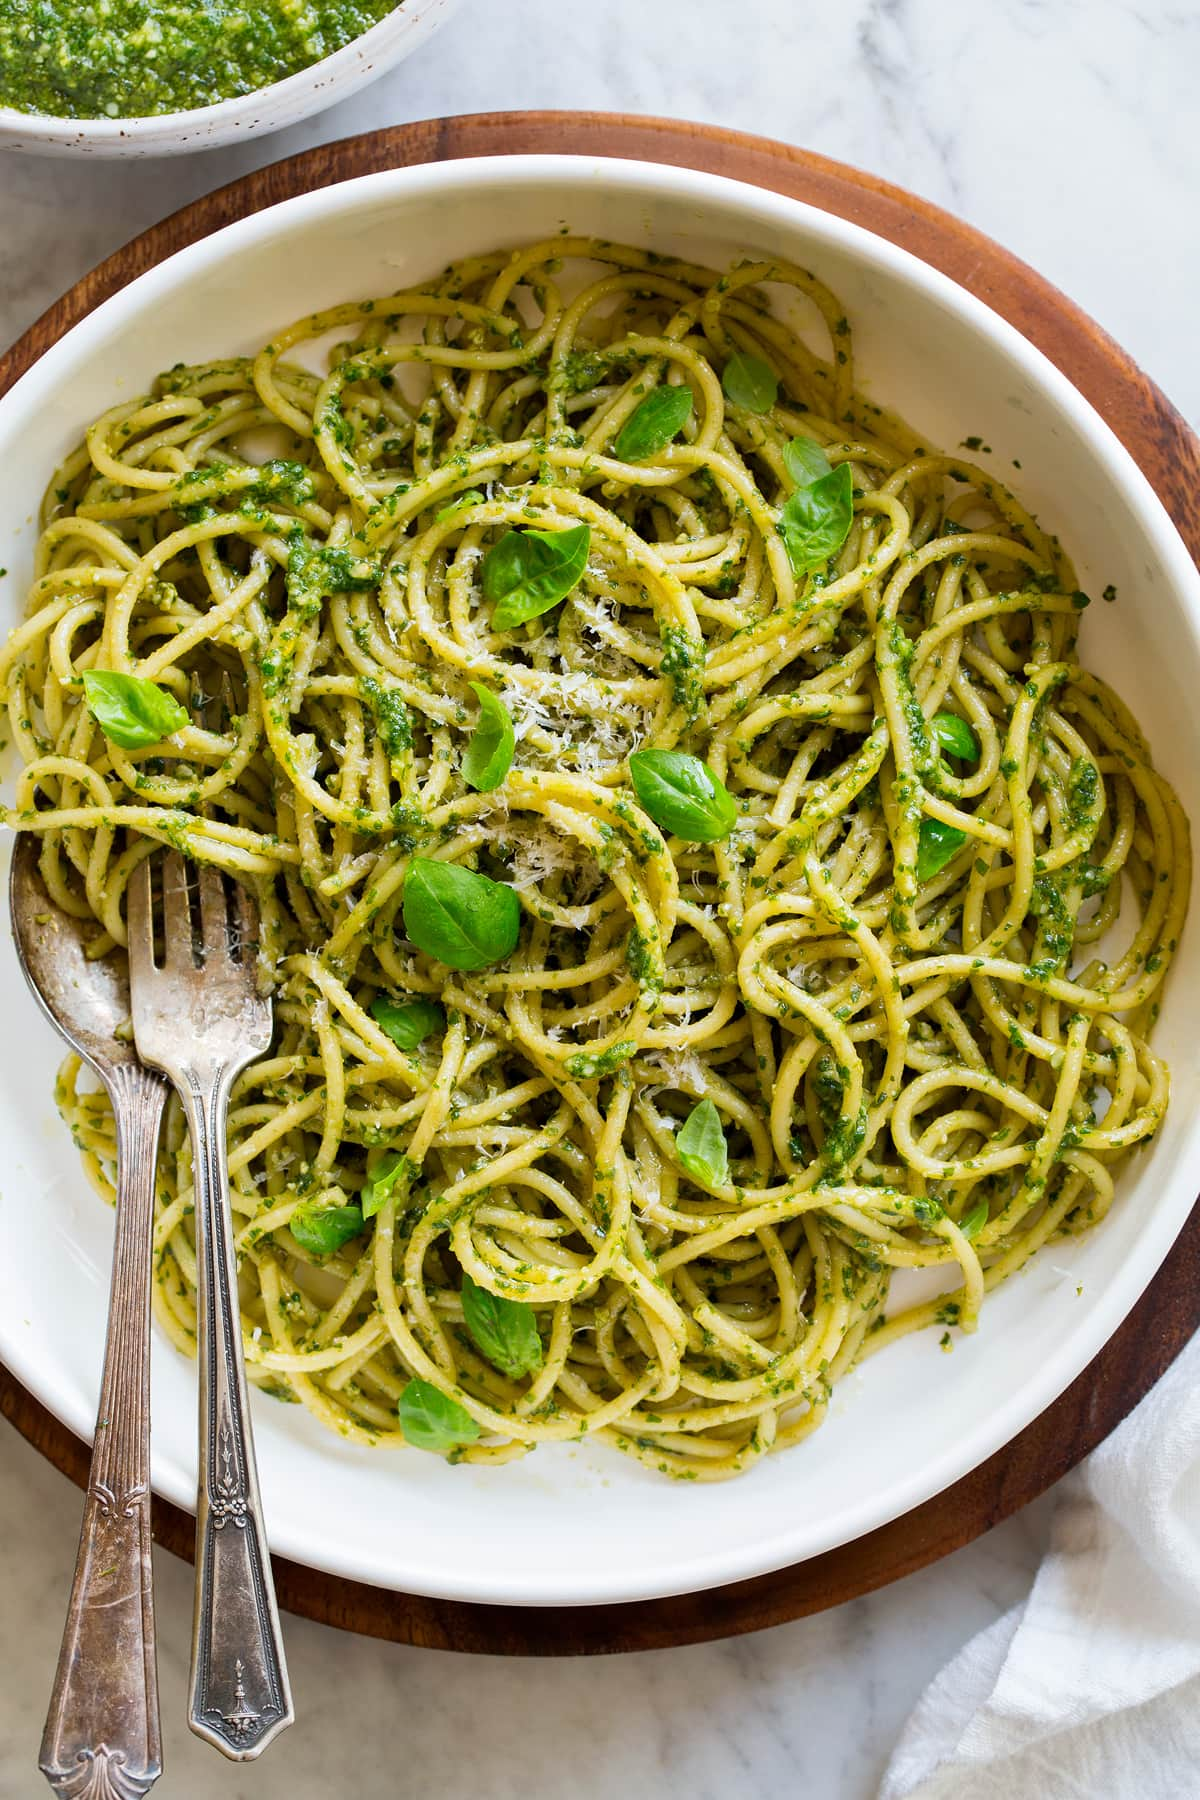 Image showing serving suggestion of pesto. Pesto is tossed of freshly cooked spaghetti pasta in a pasta bowl.